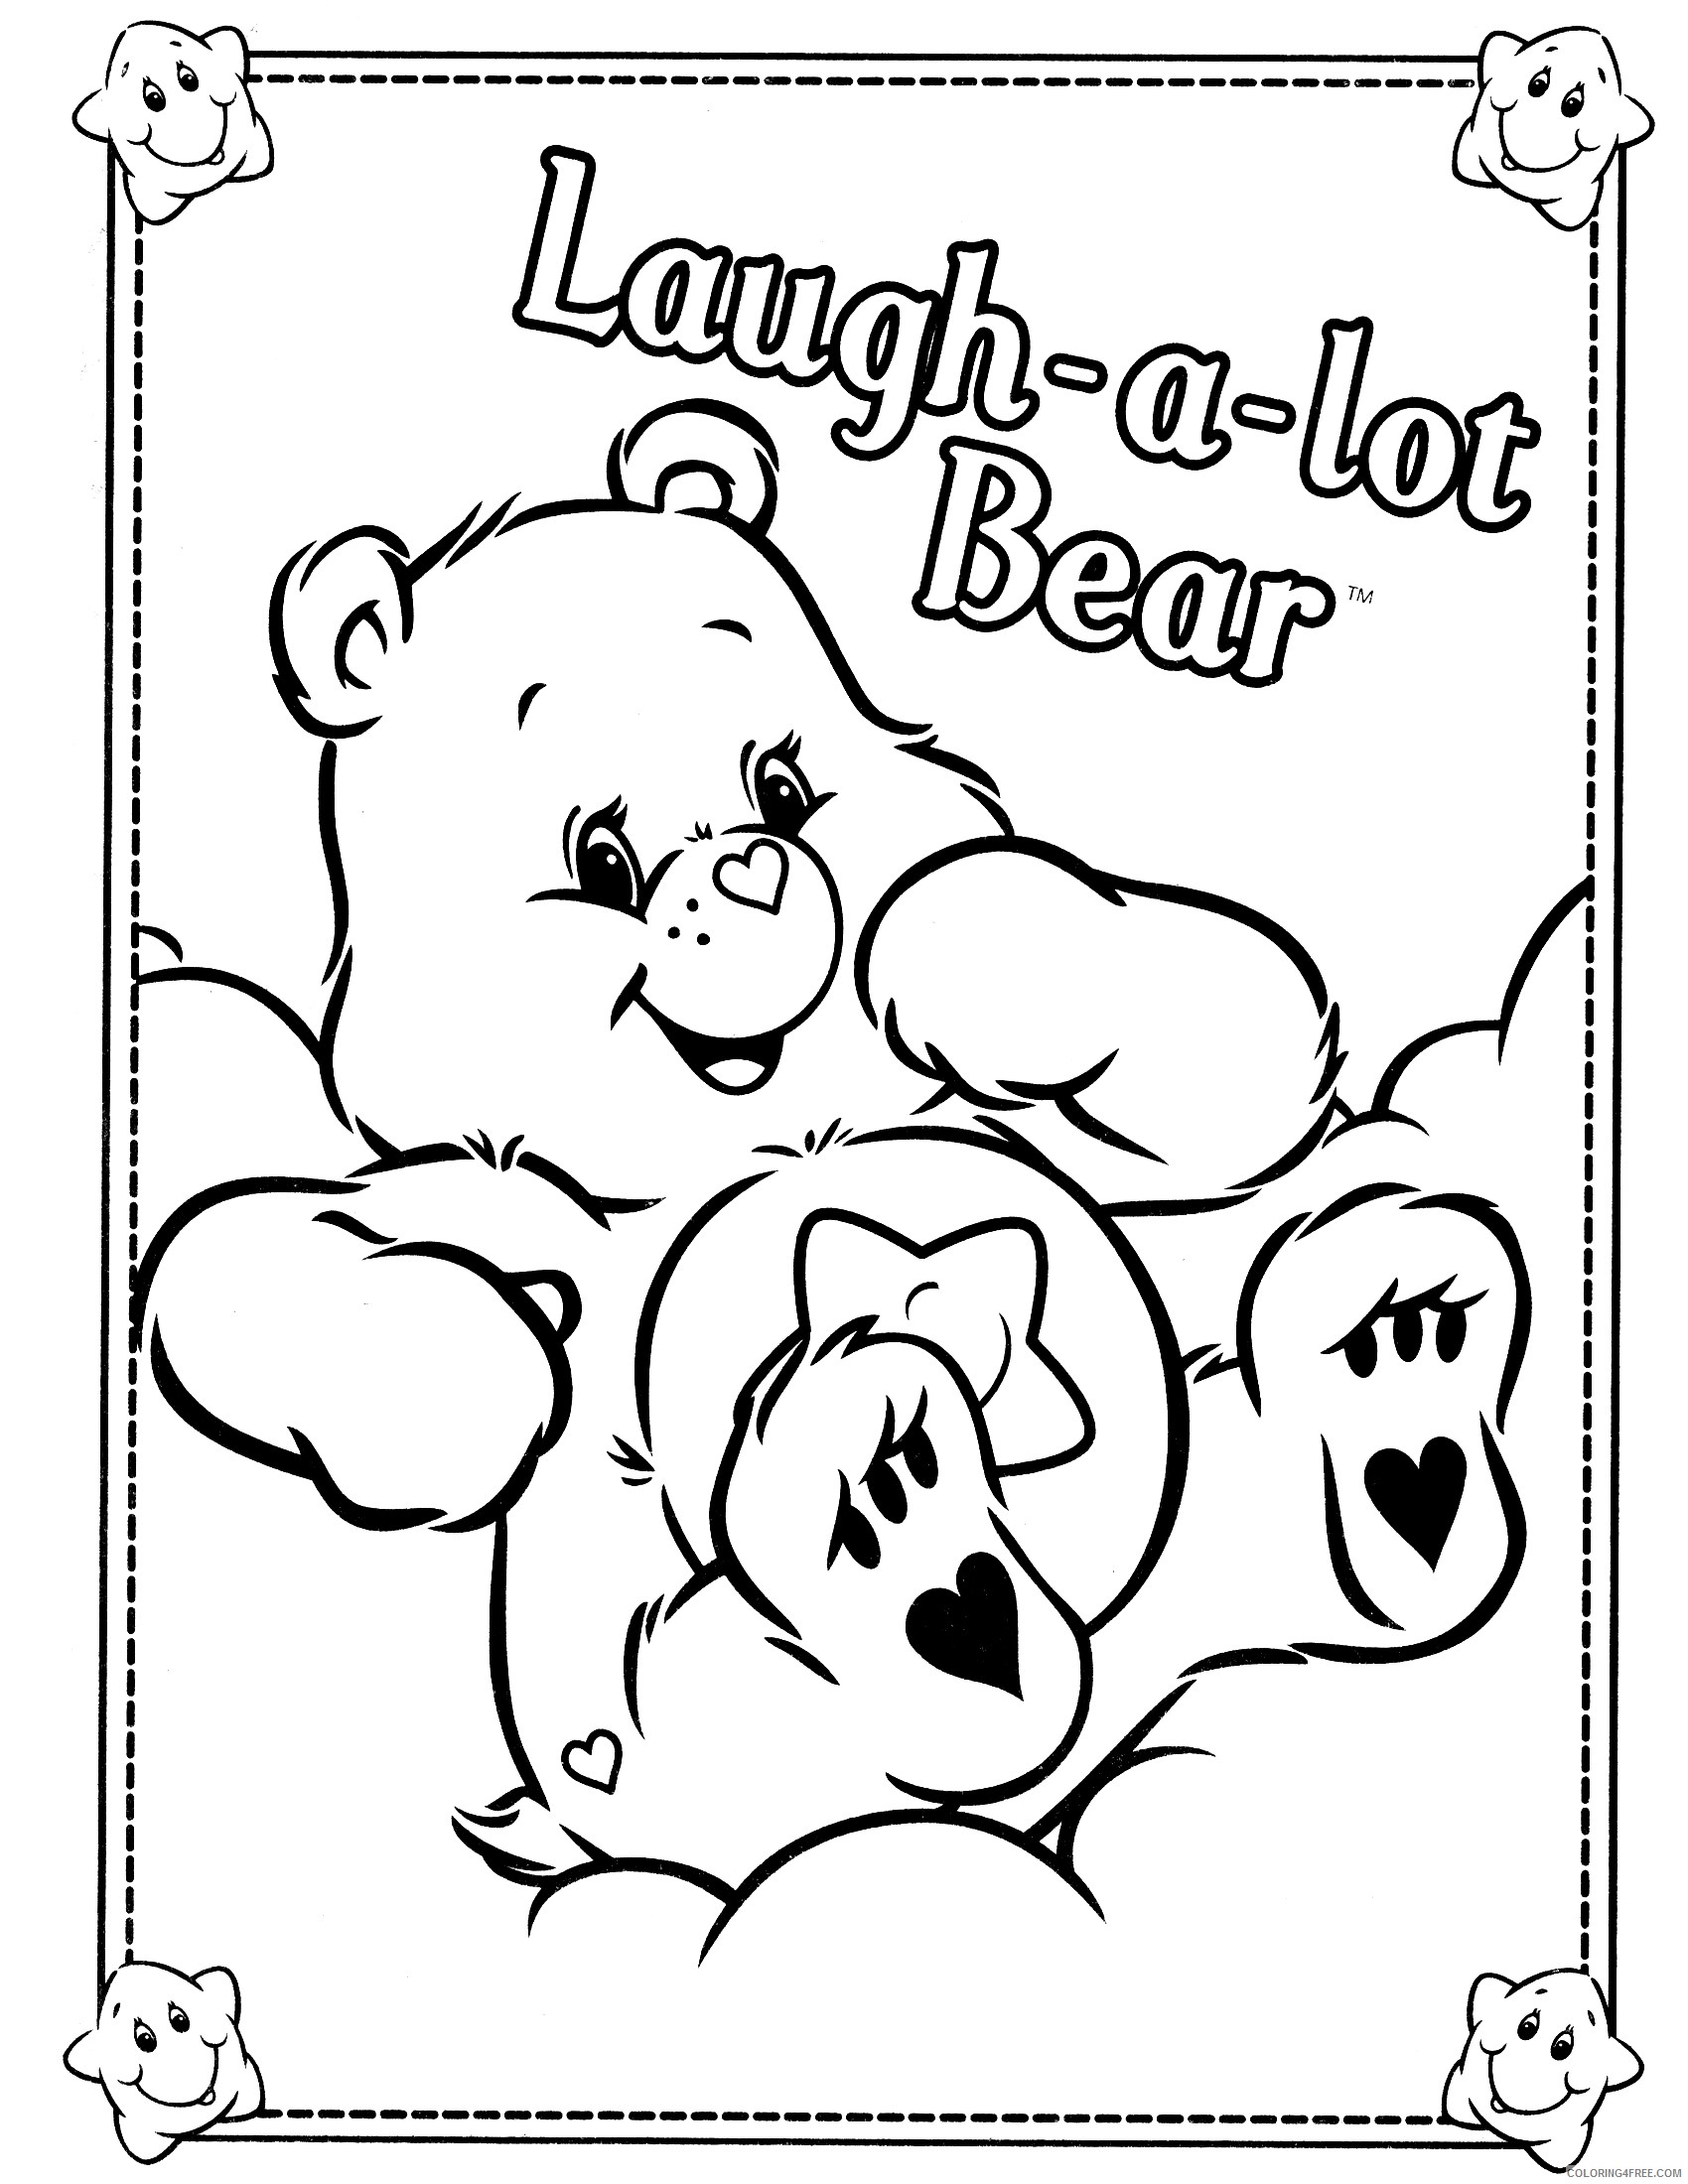 care bears coloring pages laugh a lot bear Coloring4free